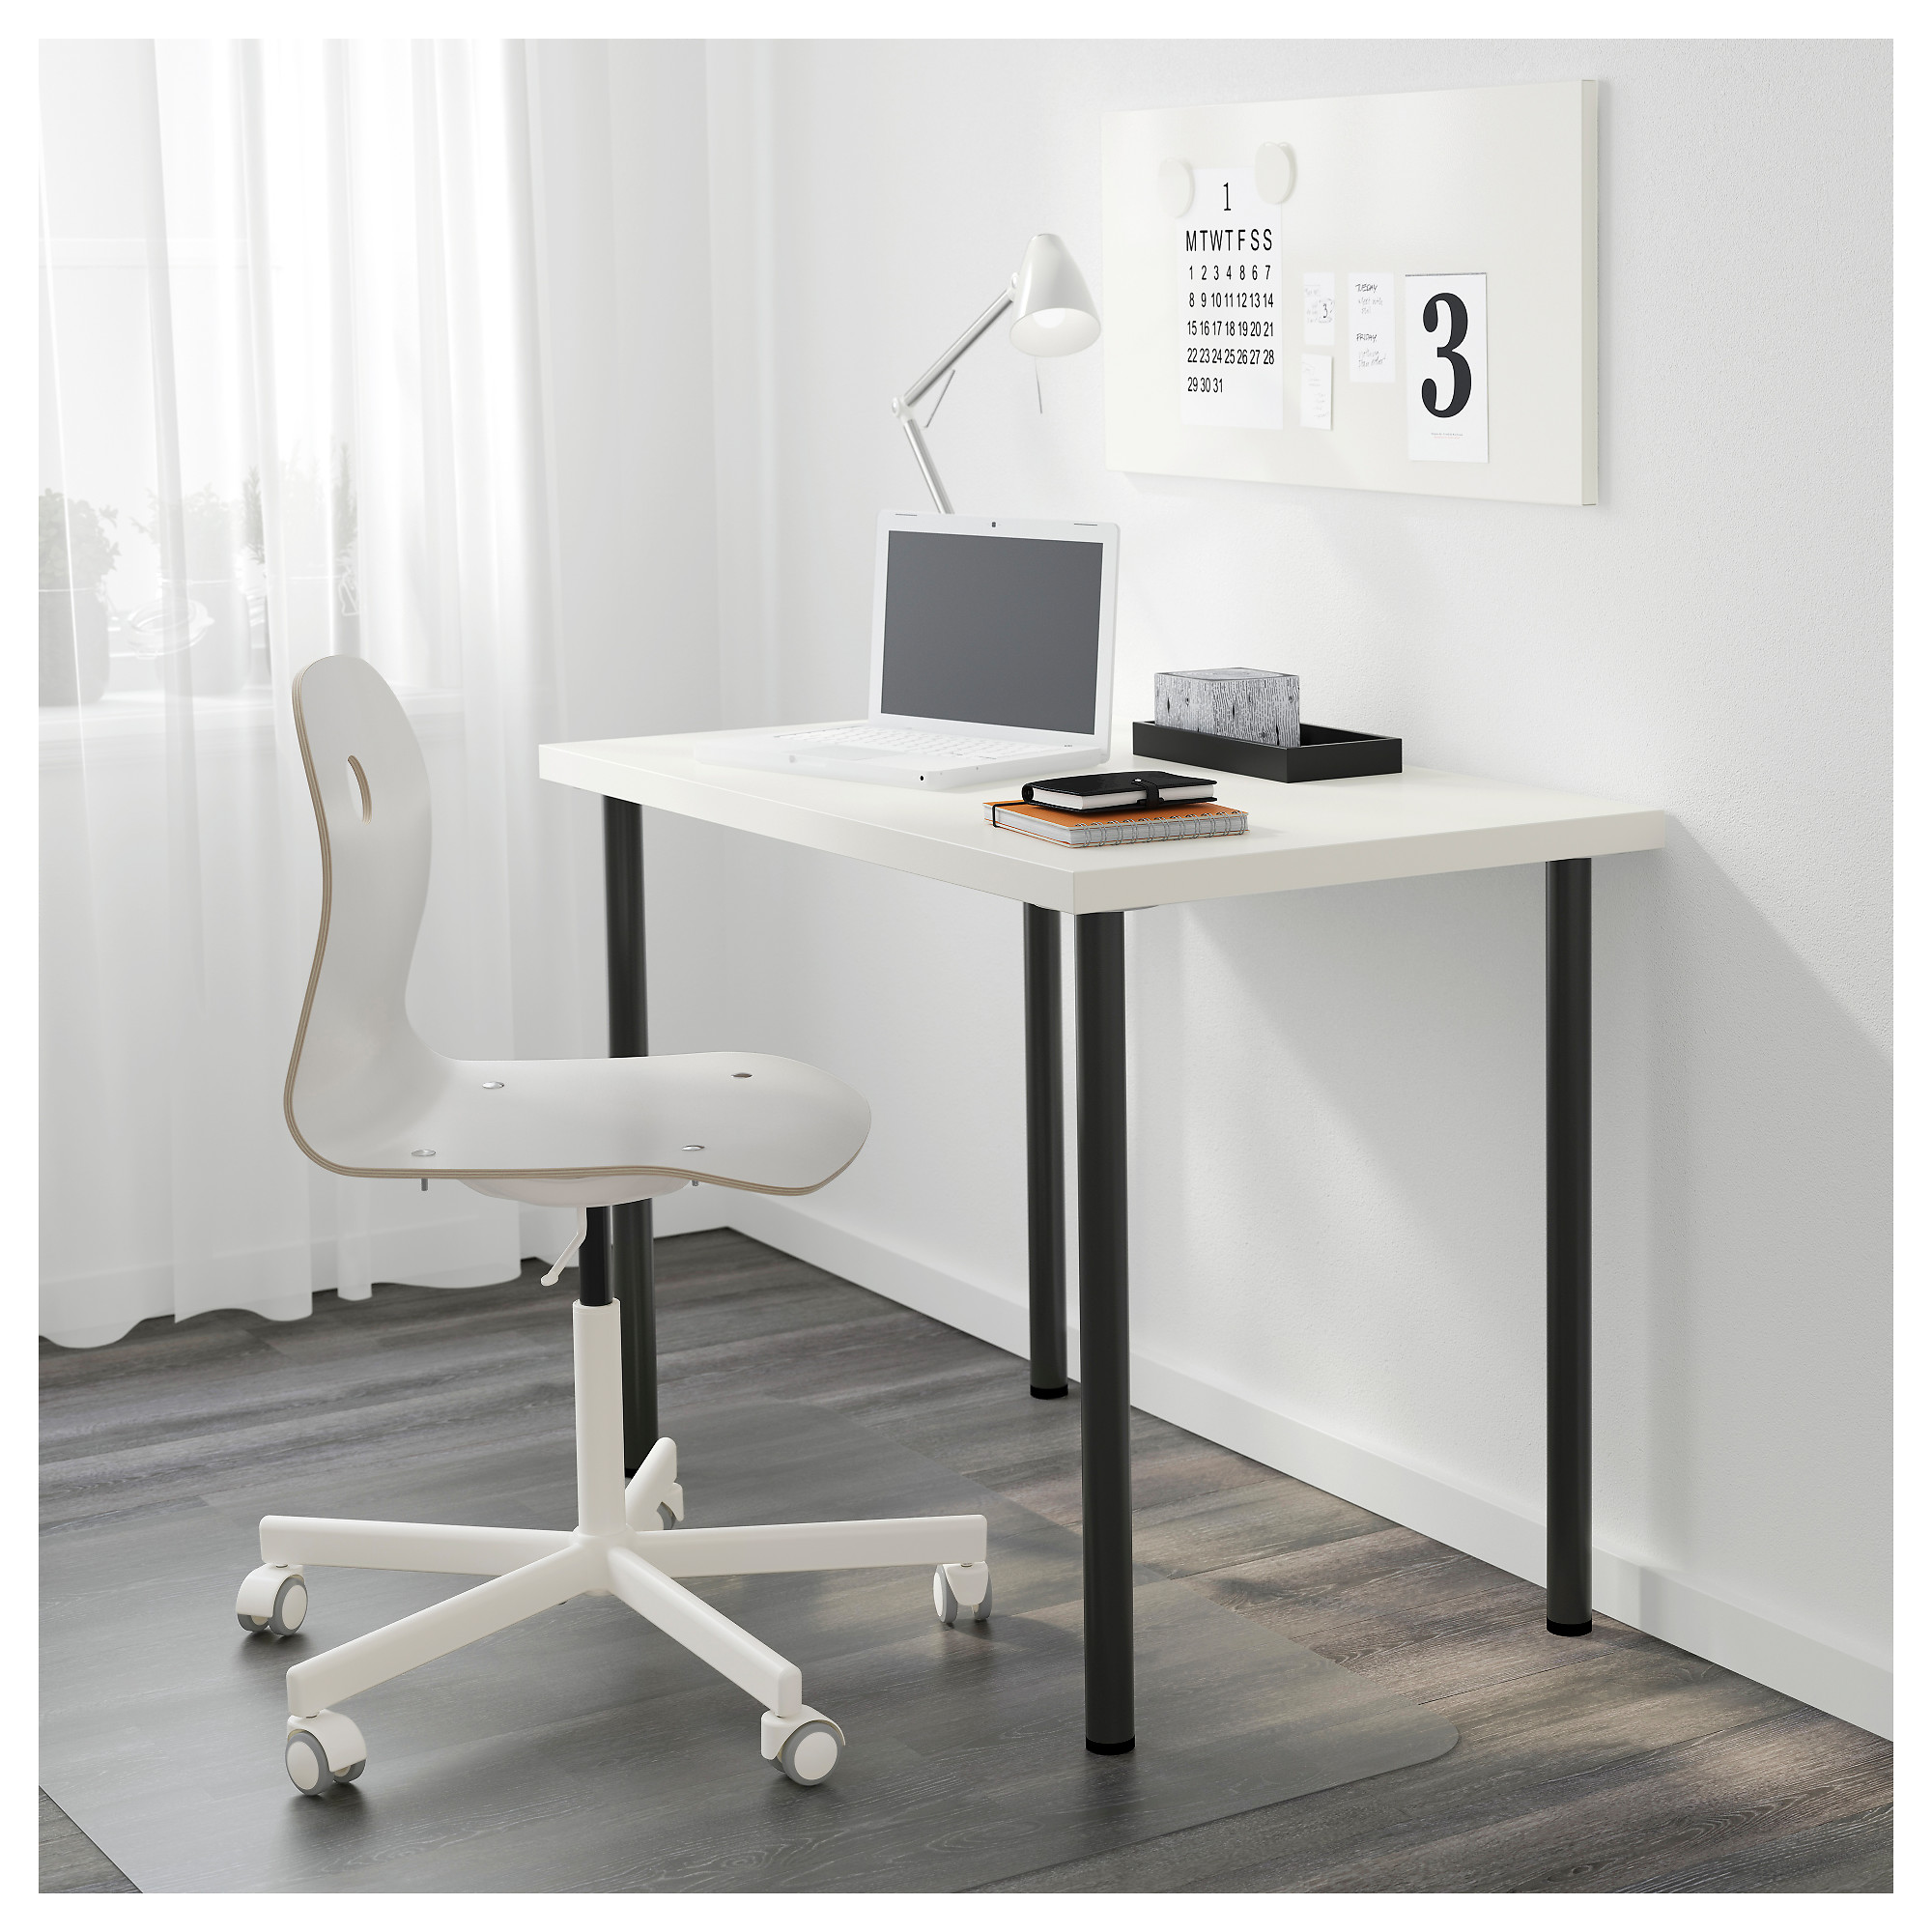 Linnmon Tabletop White Ikea